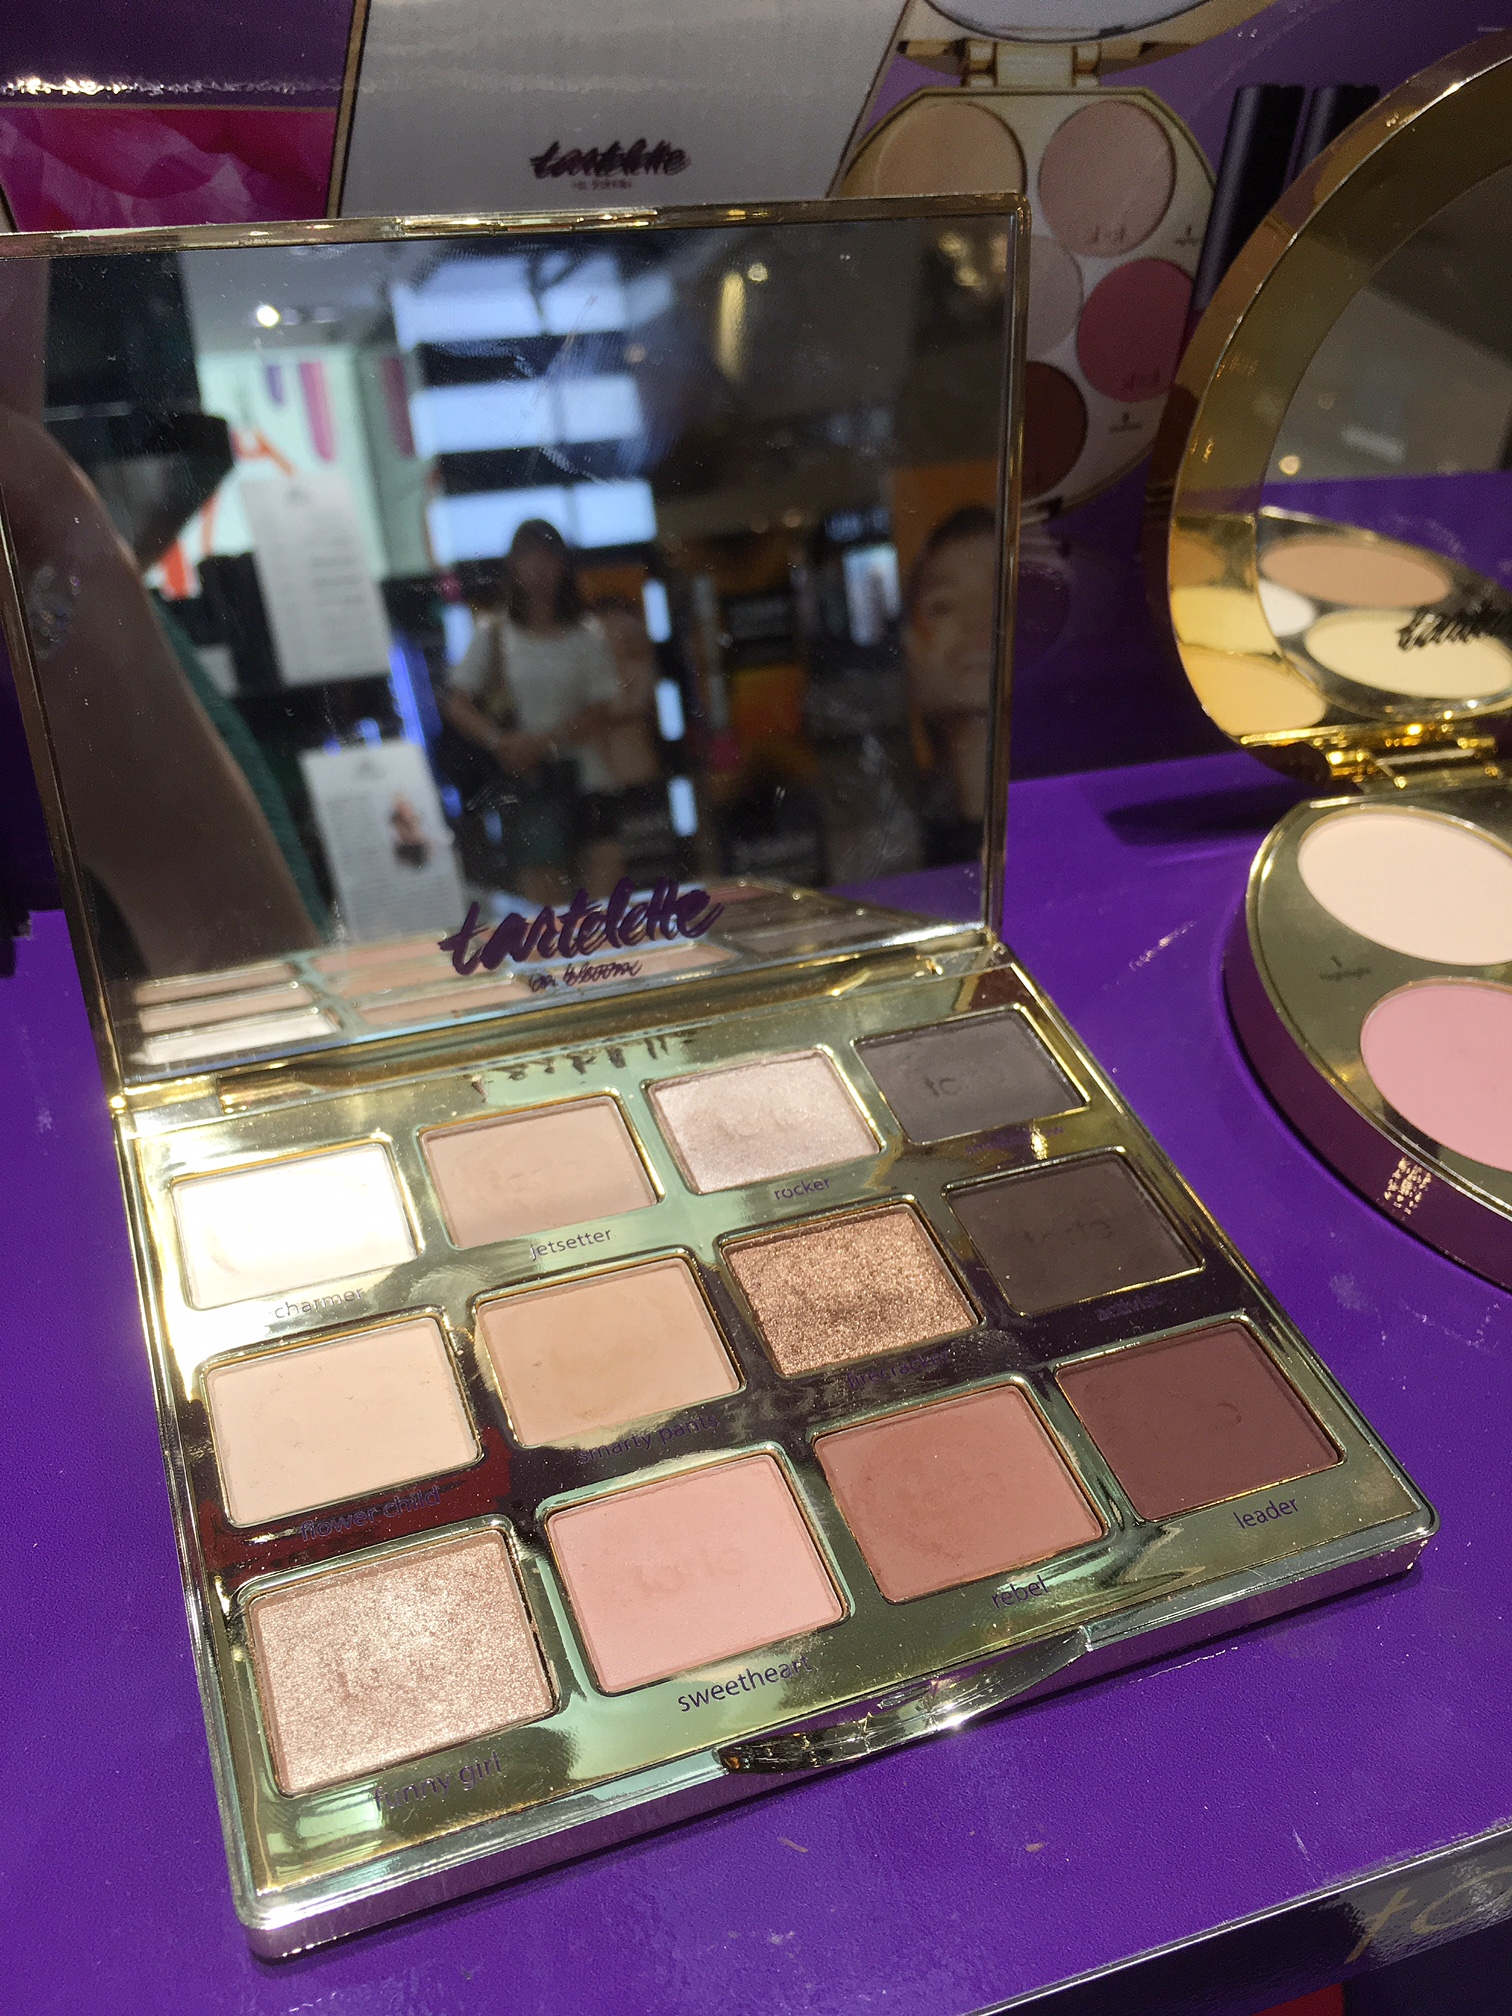 tartelette in bloom palette singapore